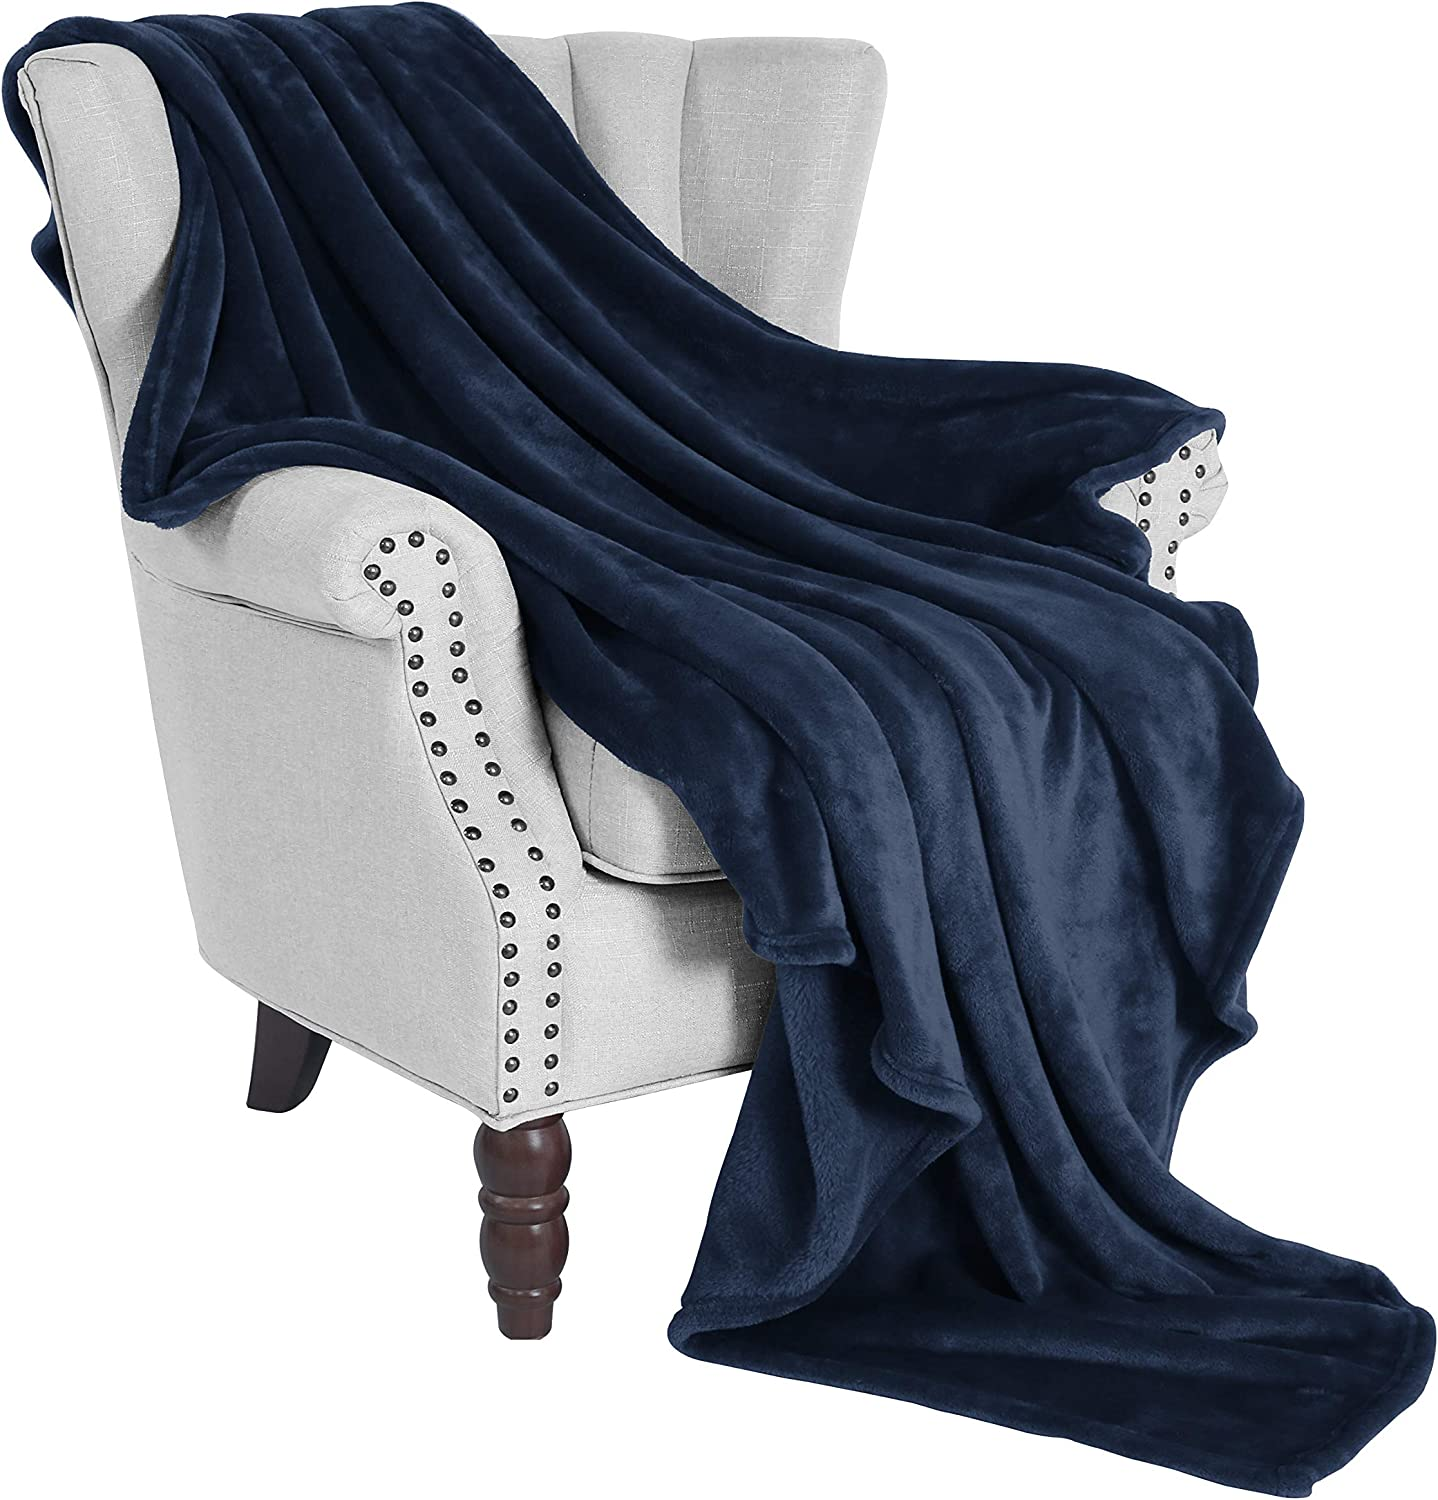 Exclusivo Mezcla Flannel Fleece Velvet Plush Soft Throw Blanket – 50